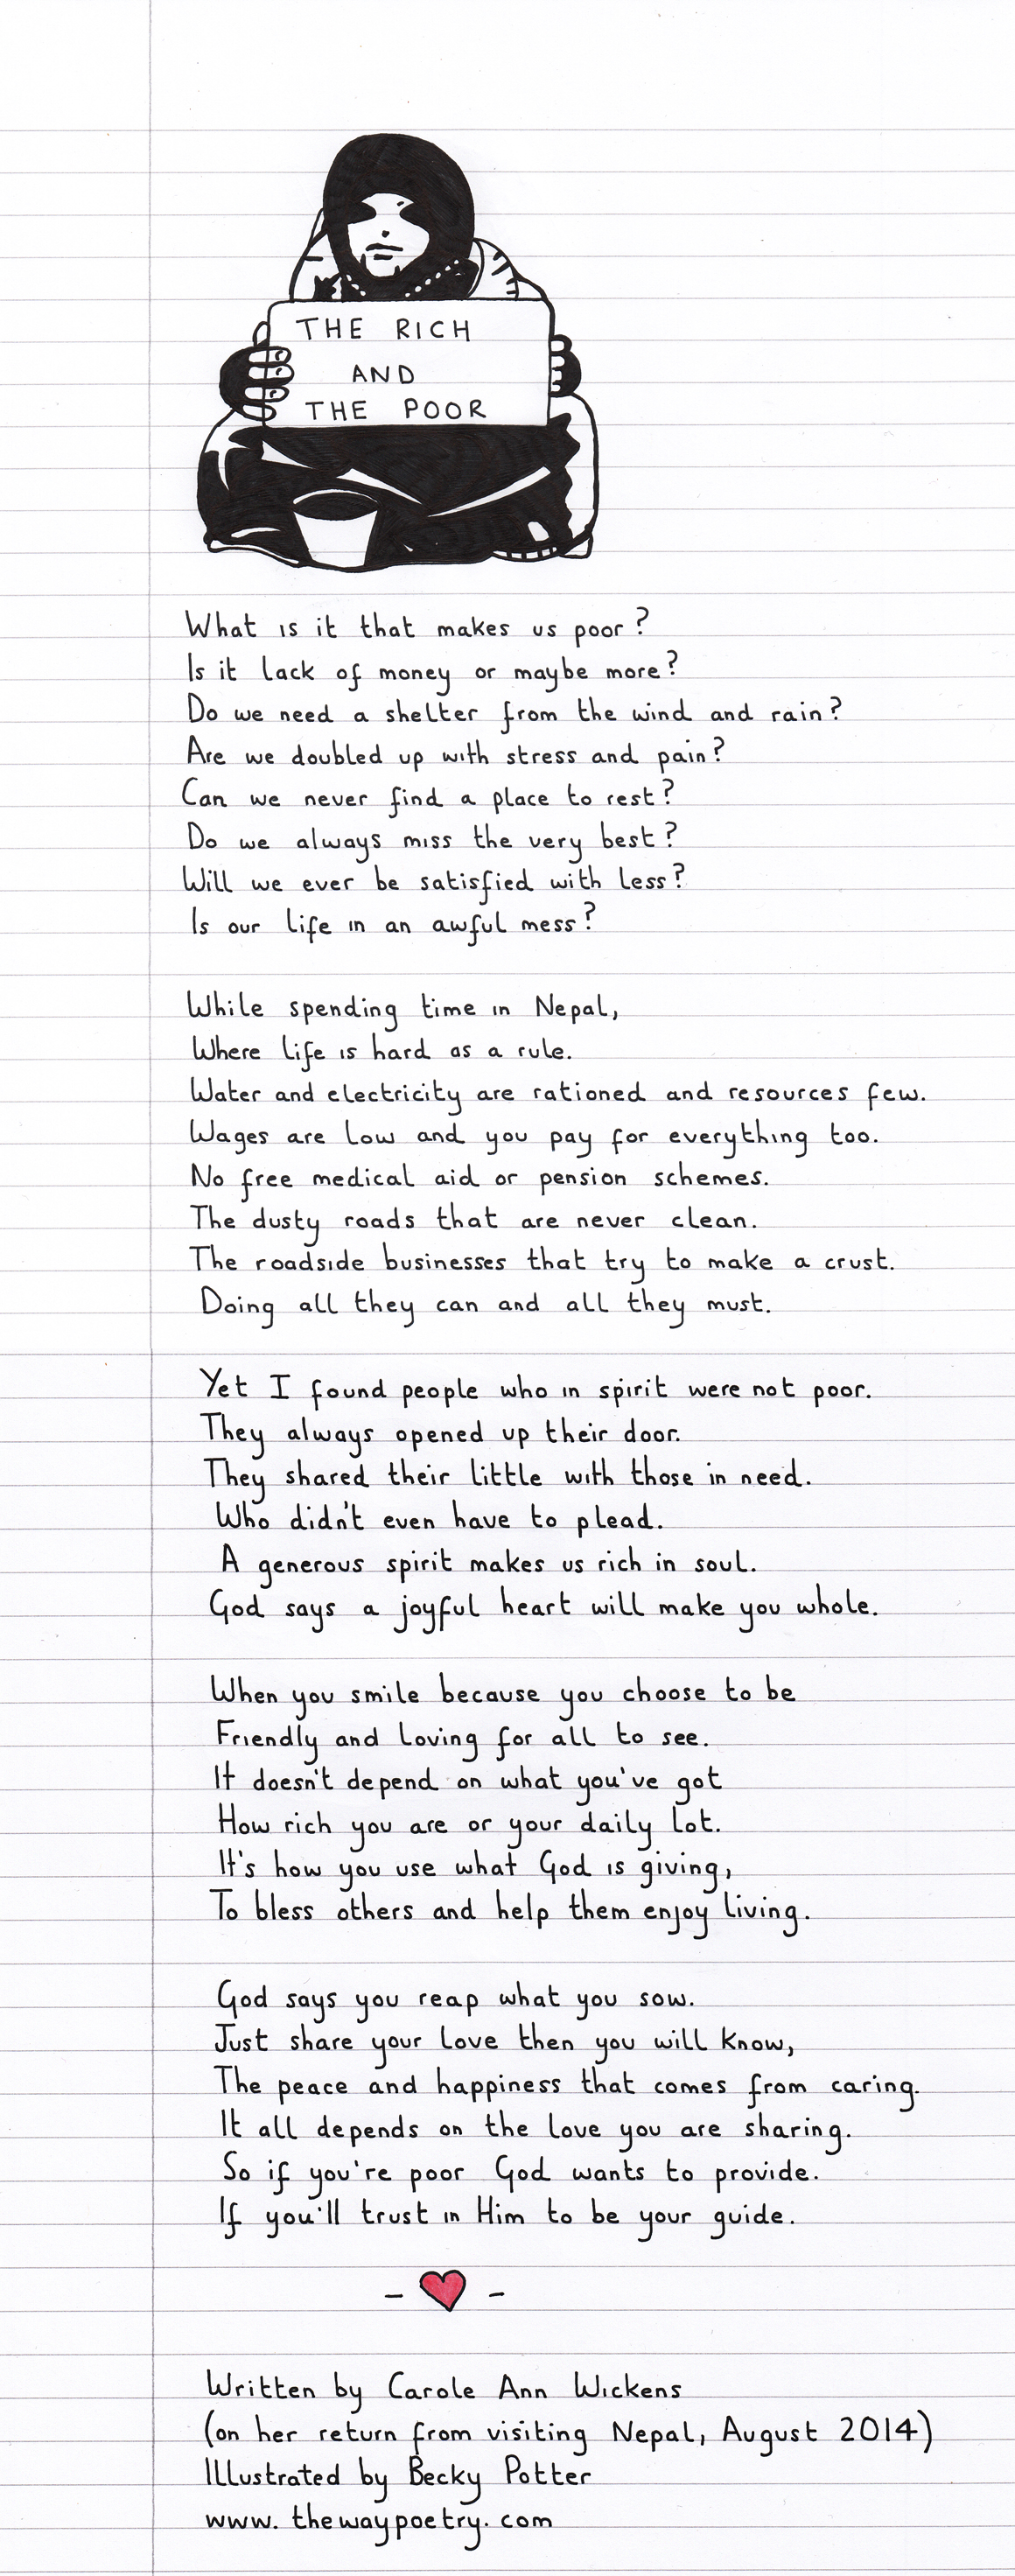 The Rich And The Poor by Carole Ann Wickens